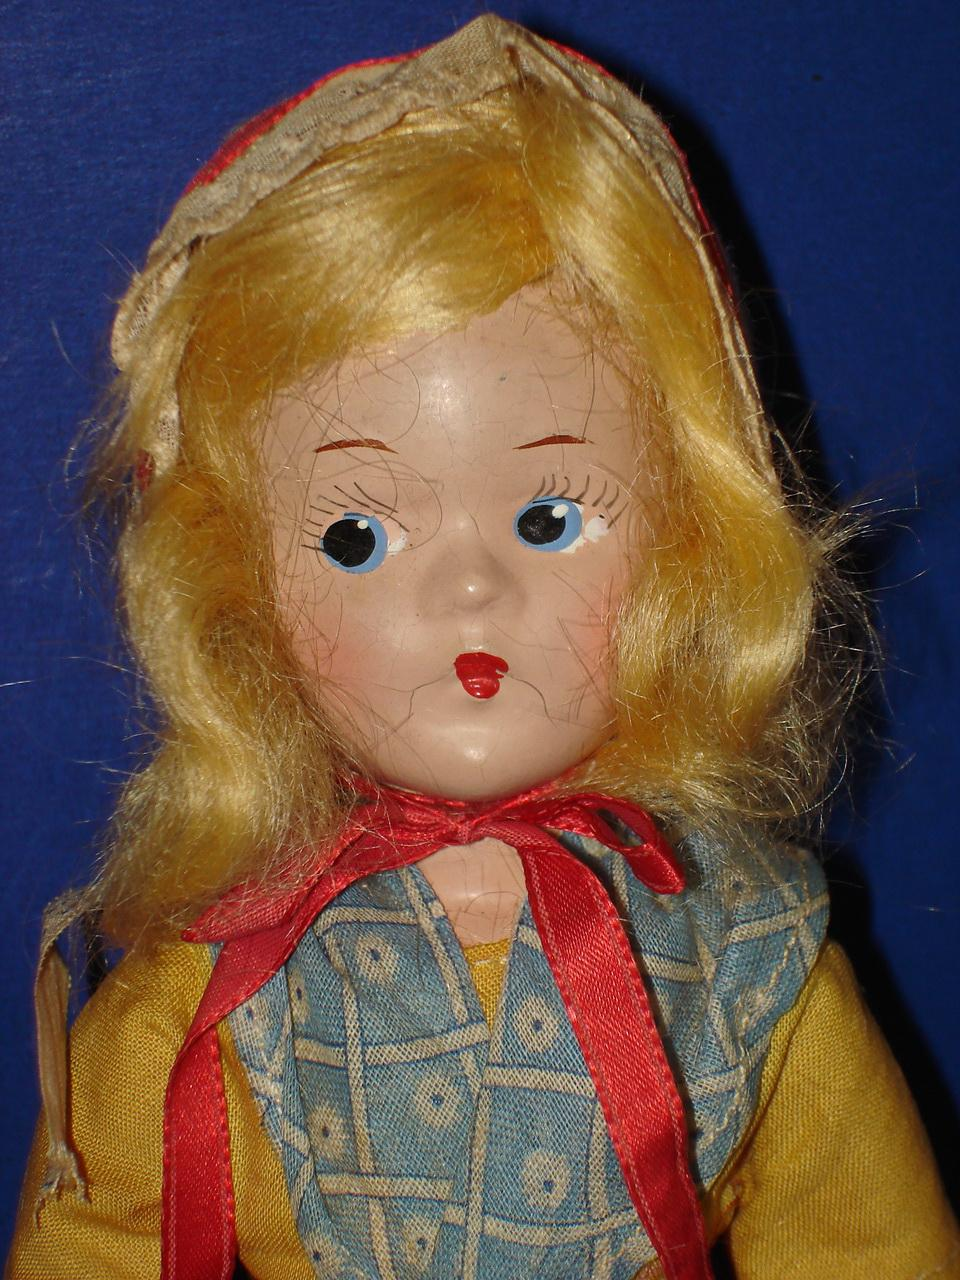 madame alexander wendy ann swedish composition doll with